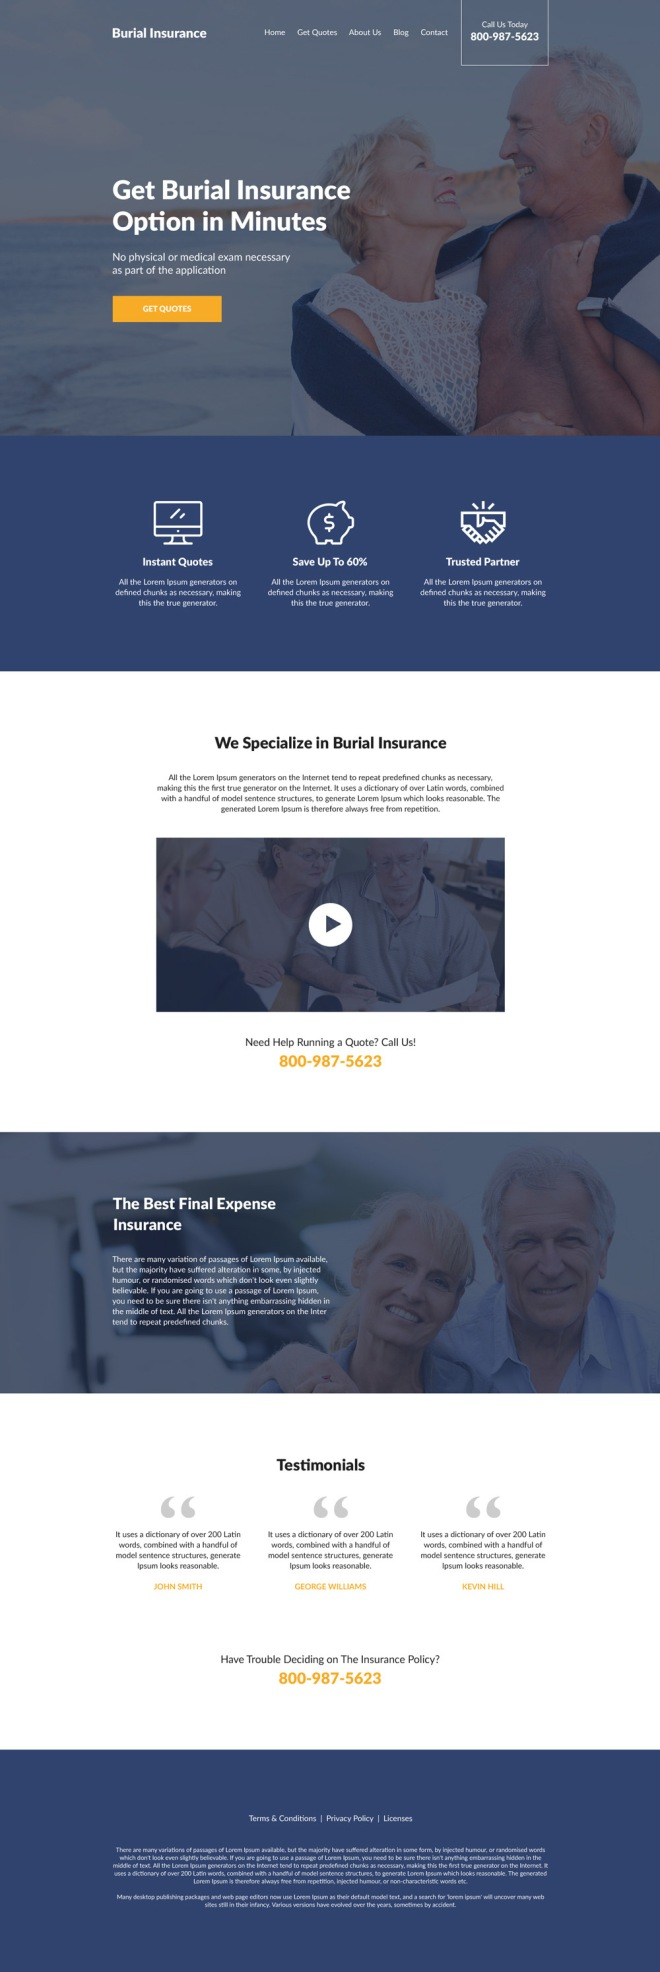 professional burial insurance free quotes responsive website design